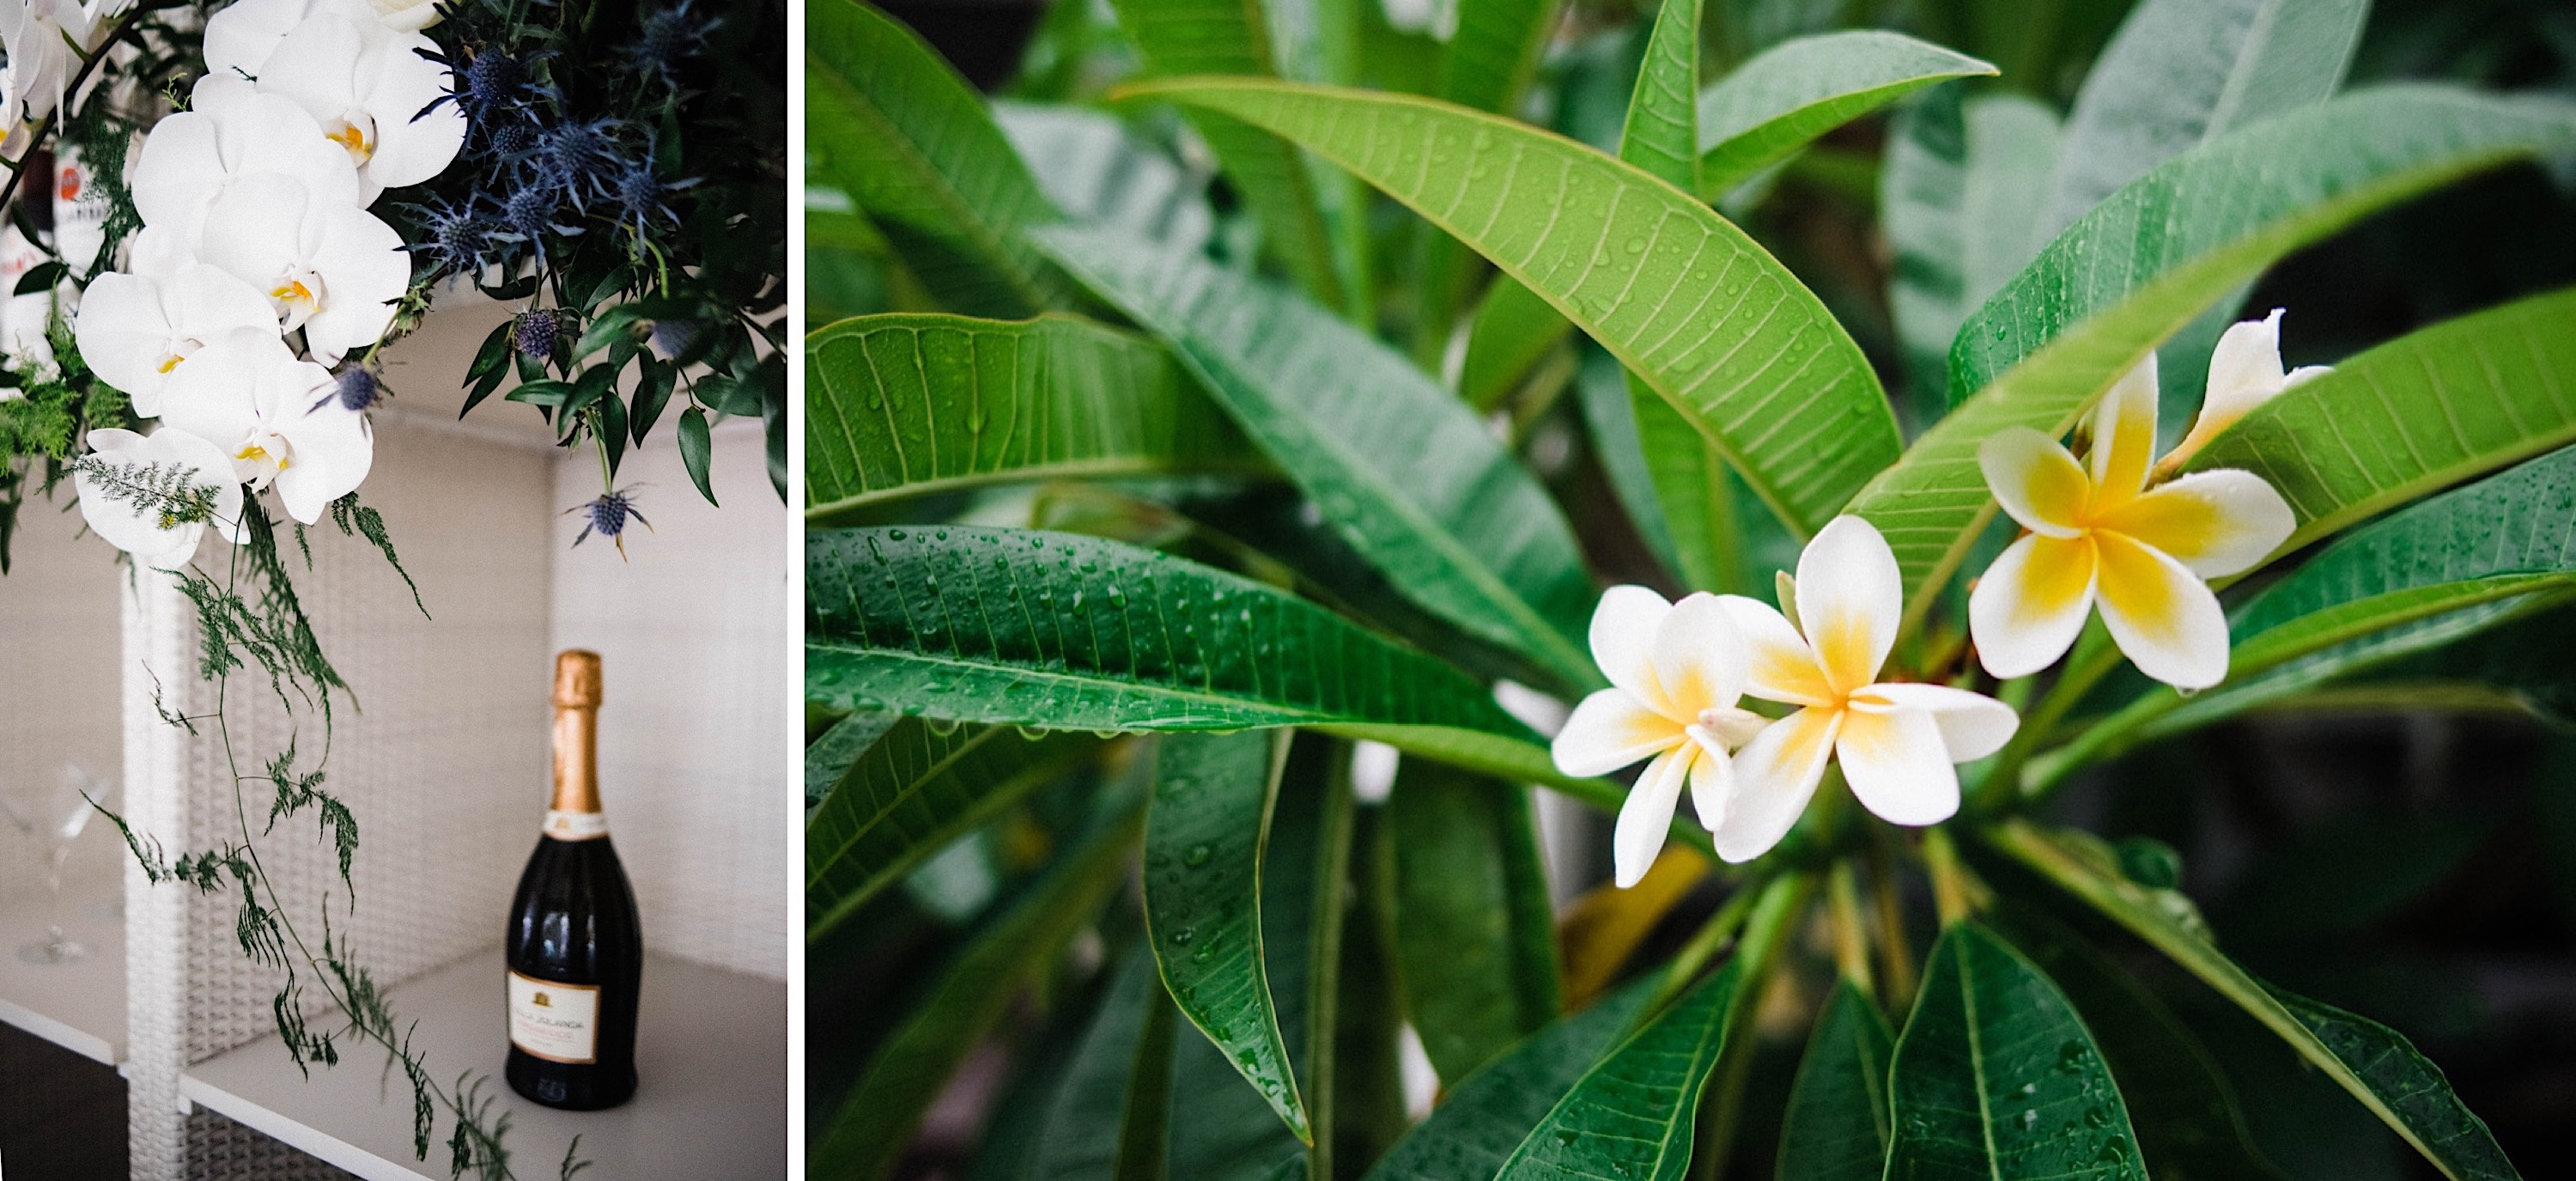 Two photos side-by-side from a Sustainable Backyard Wedding. On the left, a bottle of Prosecco and an flower arrangement with no floral foam, and on the right is a picture of the frangipani.